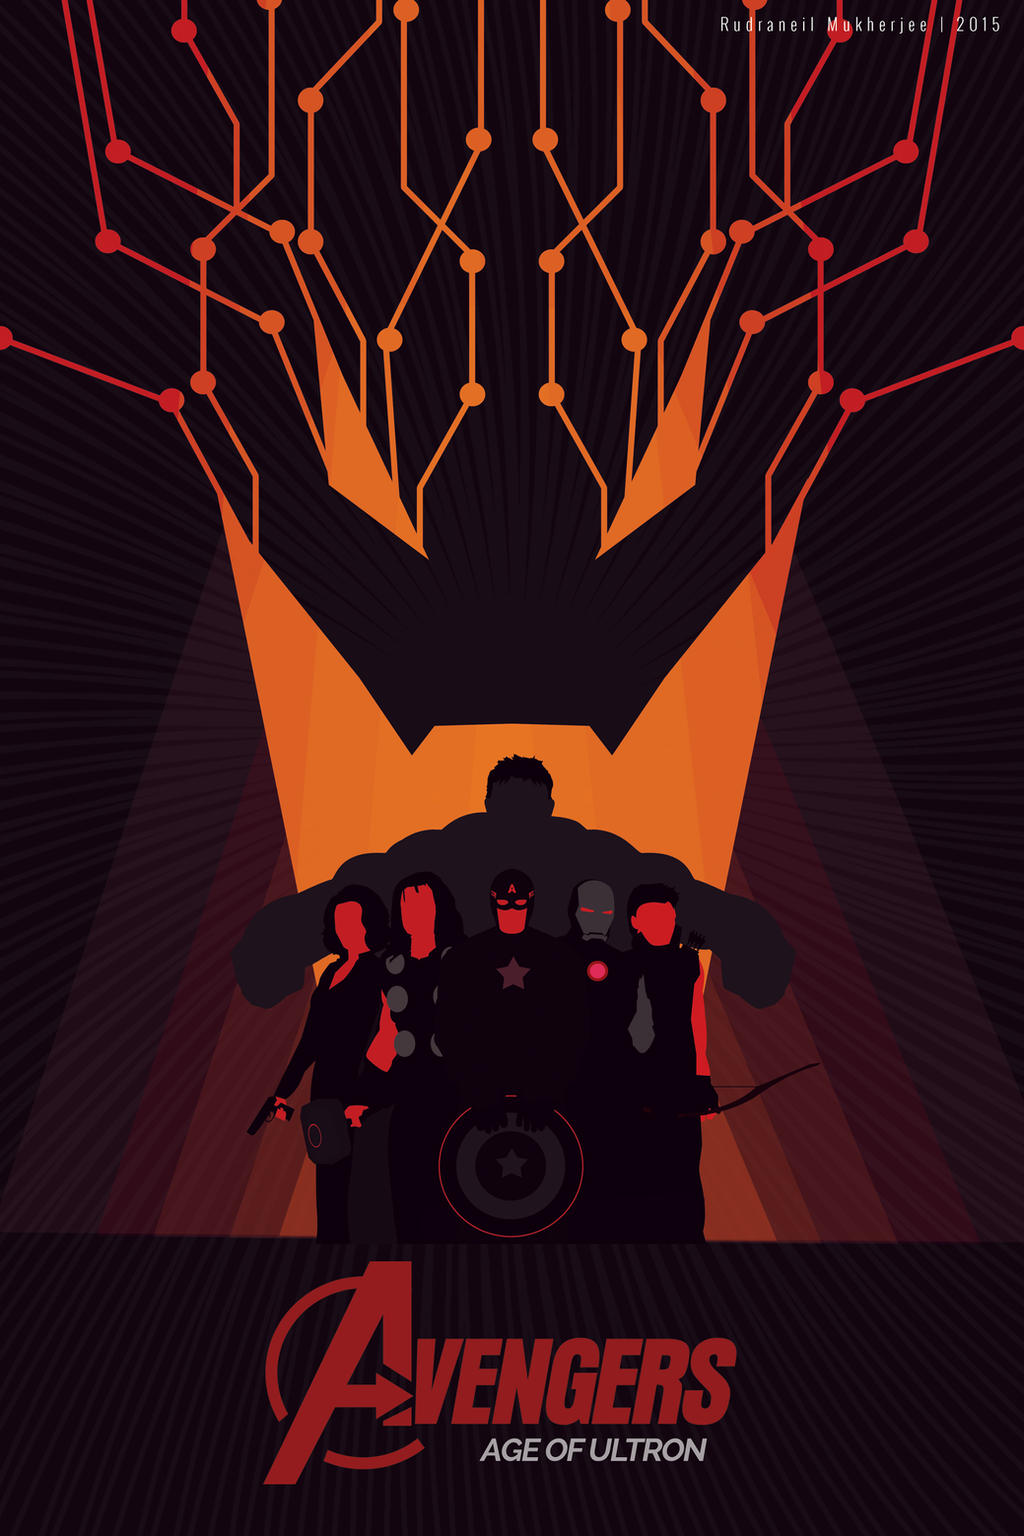 Avengers Age Of Ultron By Iloegbunam On Deviantart: Avengers: Age Of Ultron Poster By UltraShiva On DeviantArt